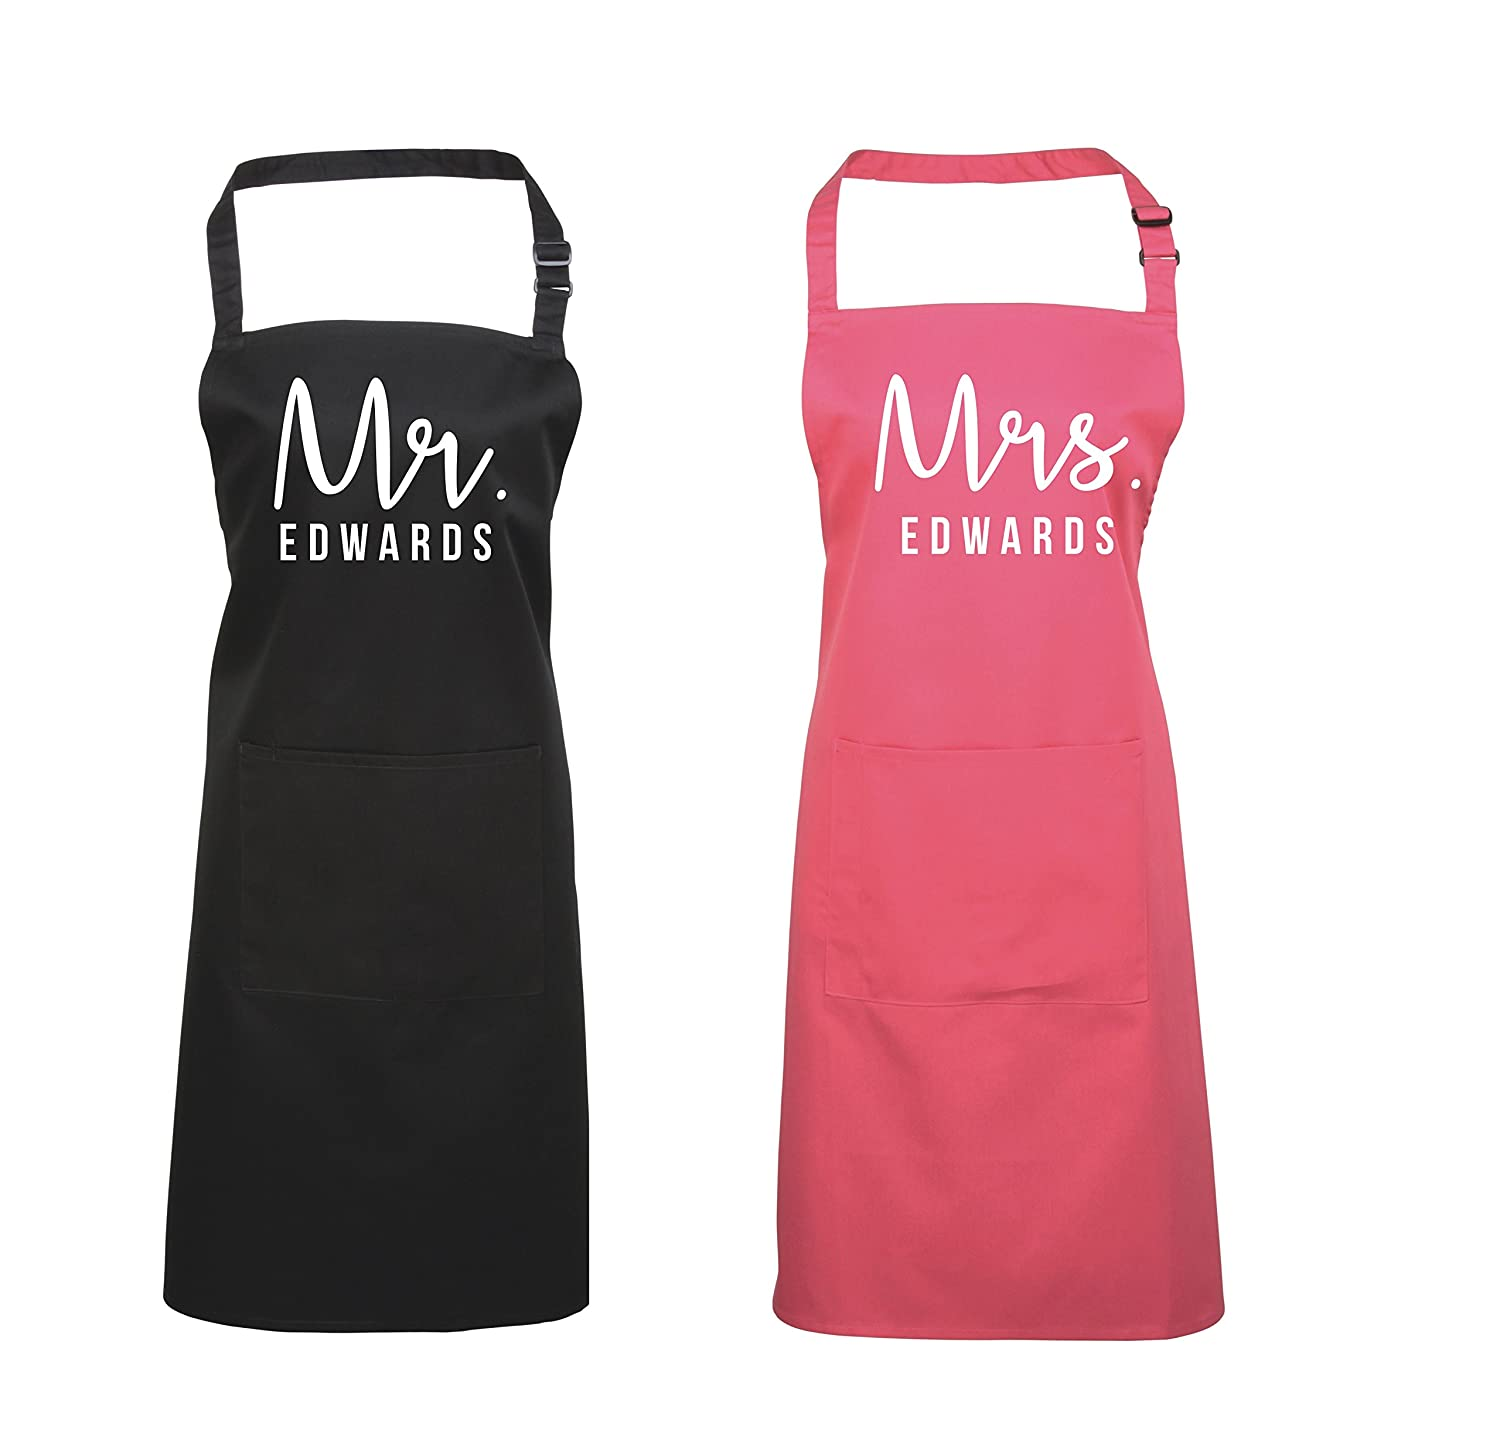 Edward Sinclair Personalised Mr. & Mrs. Apron Set Valentines Gift, Cooking Apron, Baking Apron, Kitchen Apron!